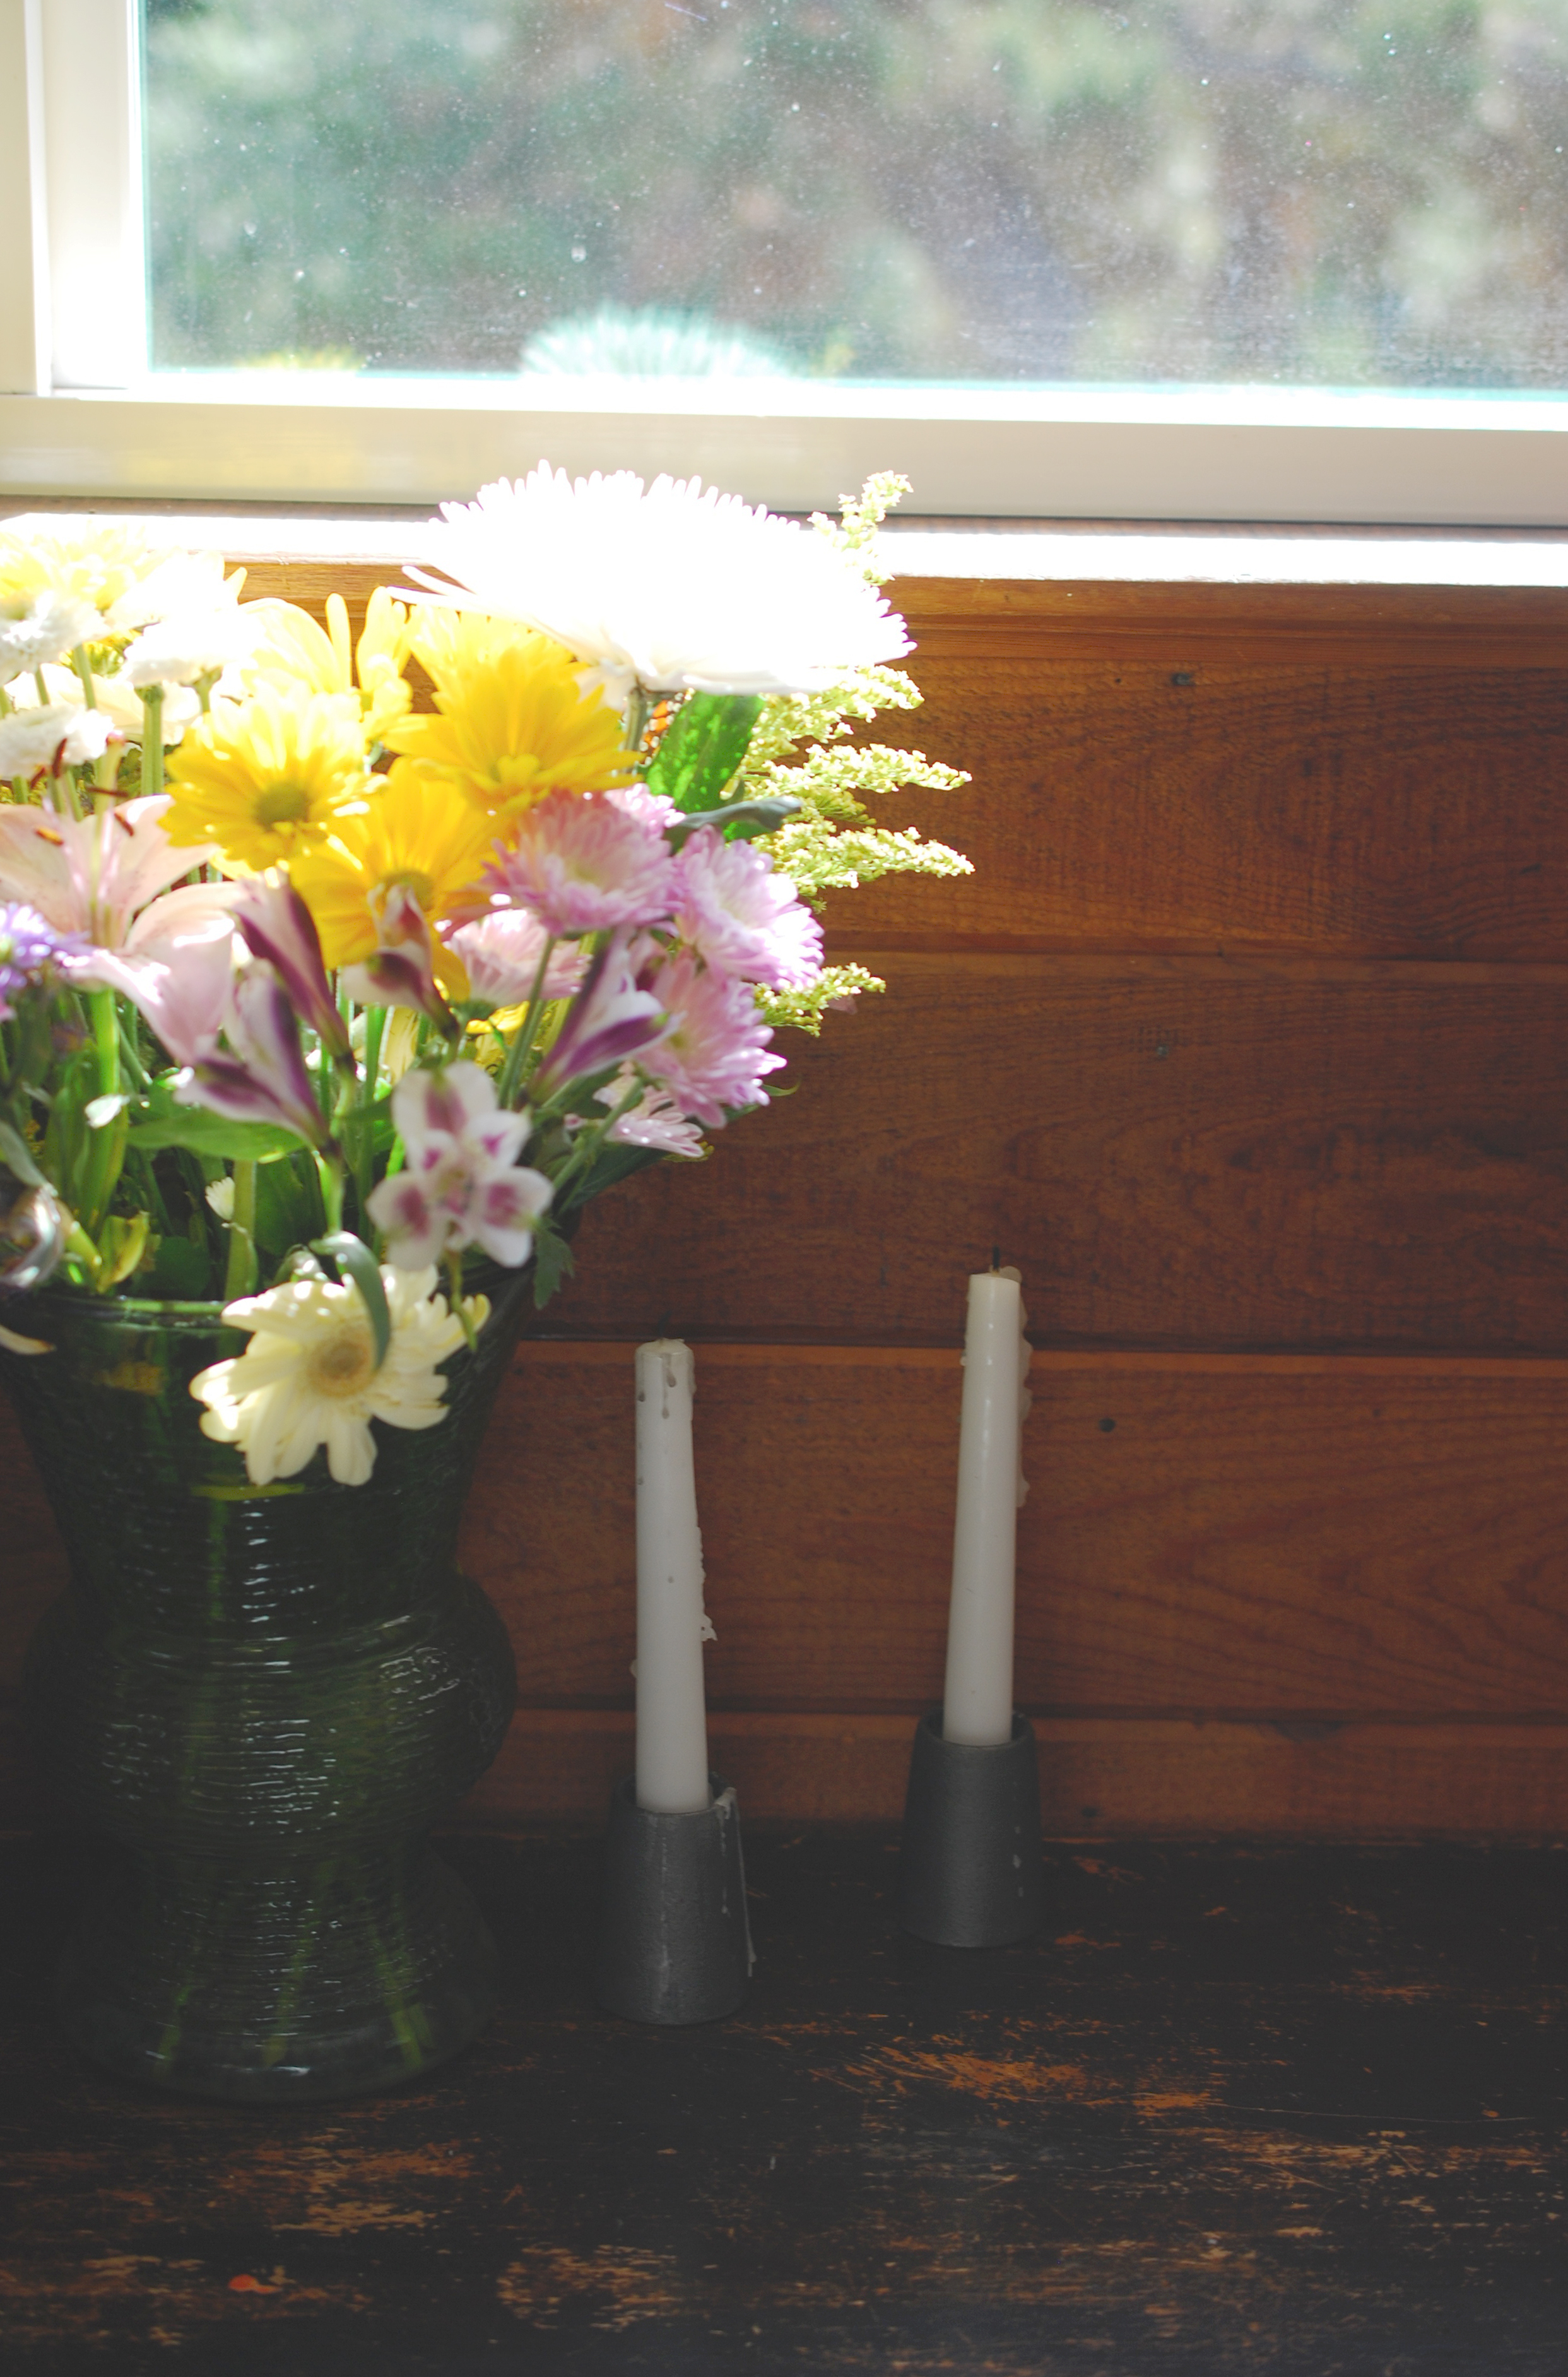 flowers and candles still out from Easter